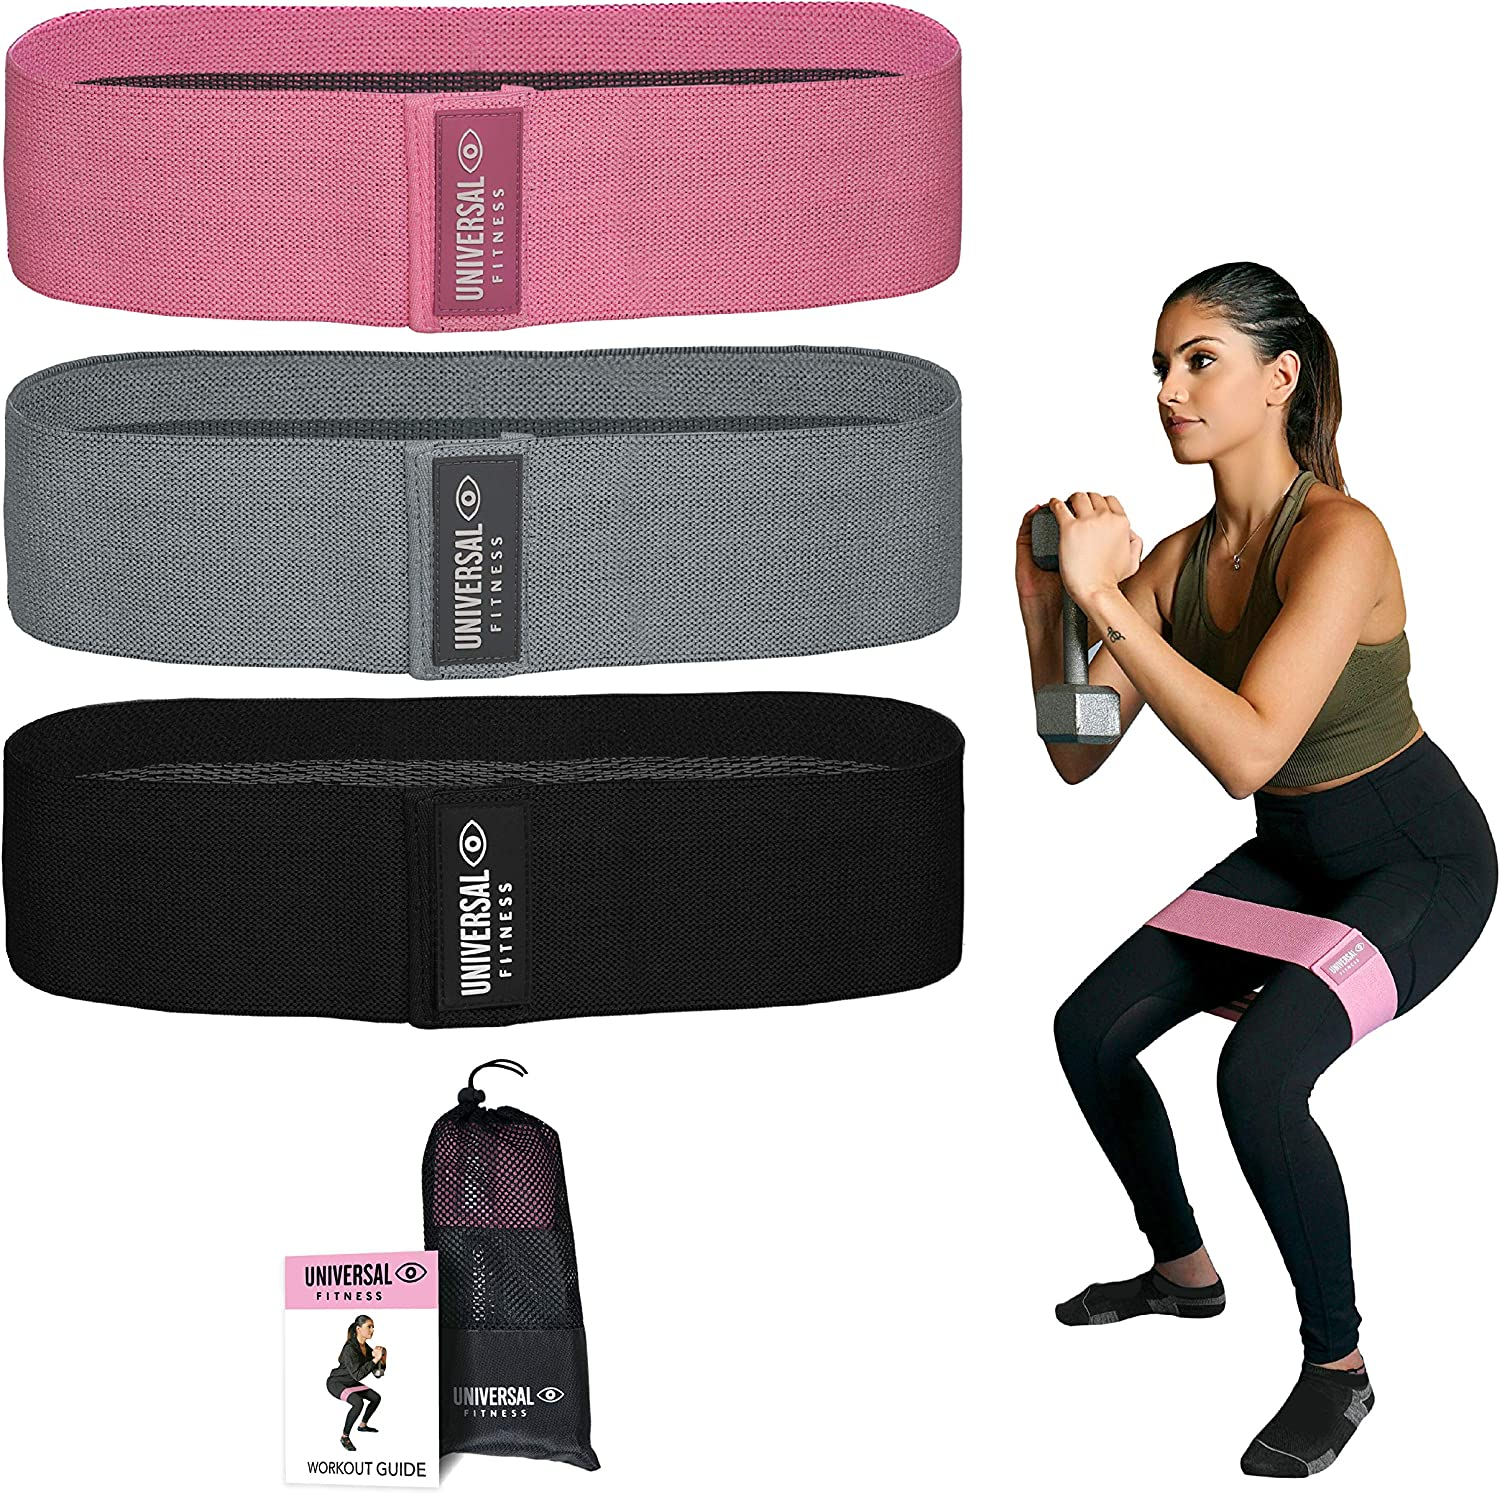 Max 74% OFF Resistance Exercise Bands Fabric Non Slip Squats for Hip Regular dealer